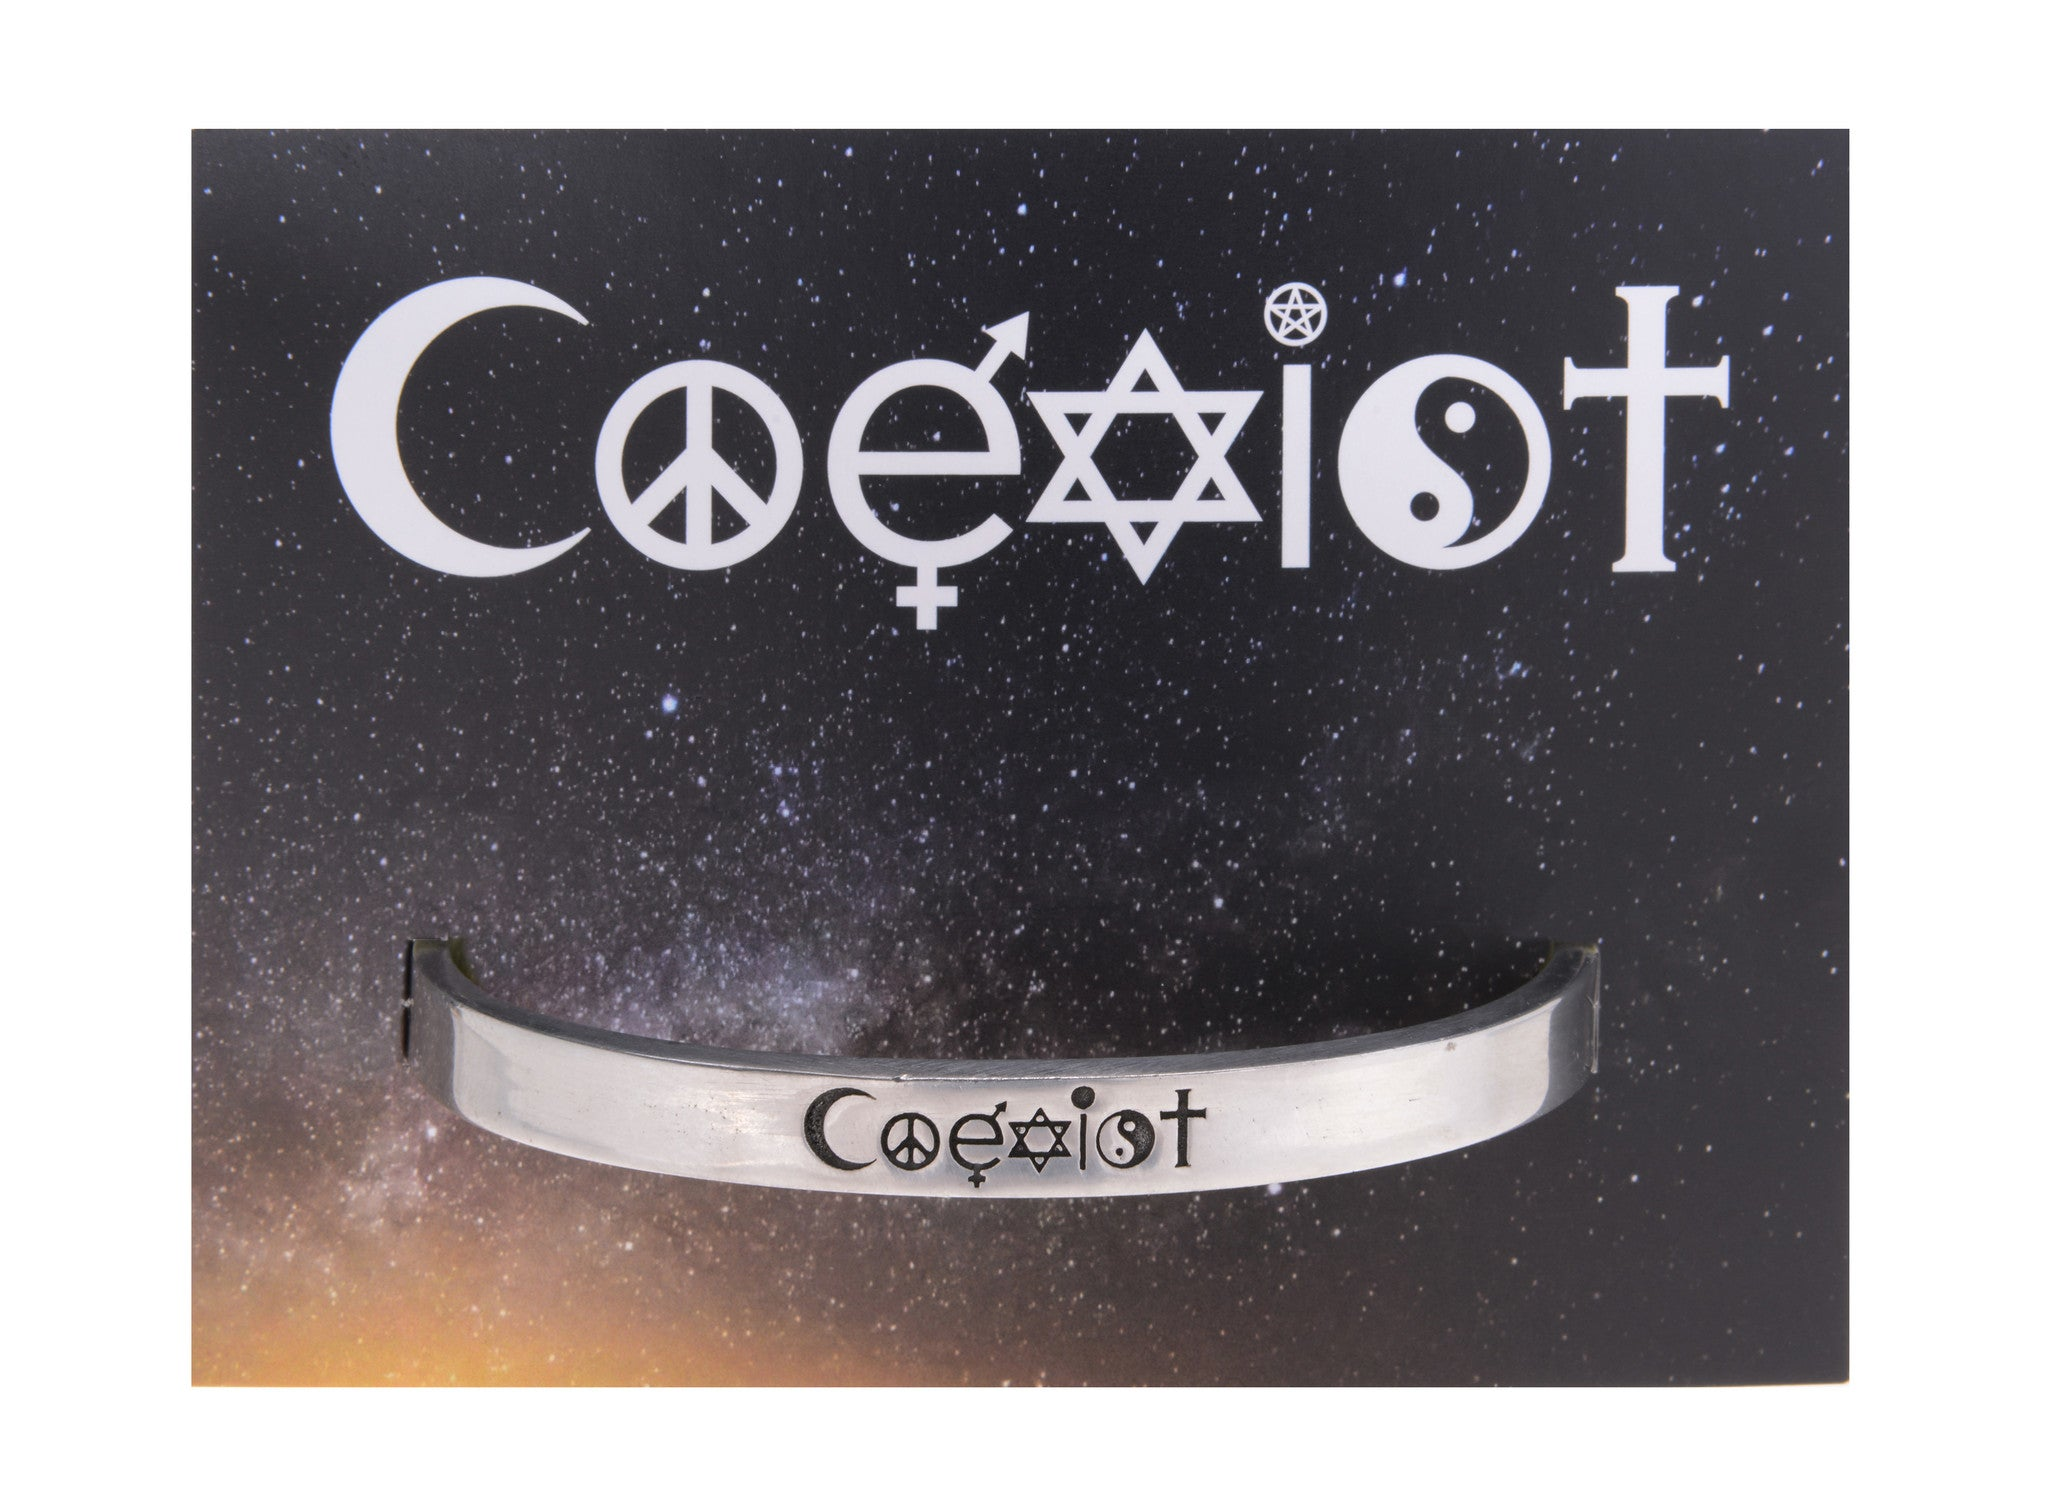 Coexist Quotable Cuff Bracelet - Whitney Howard Designs